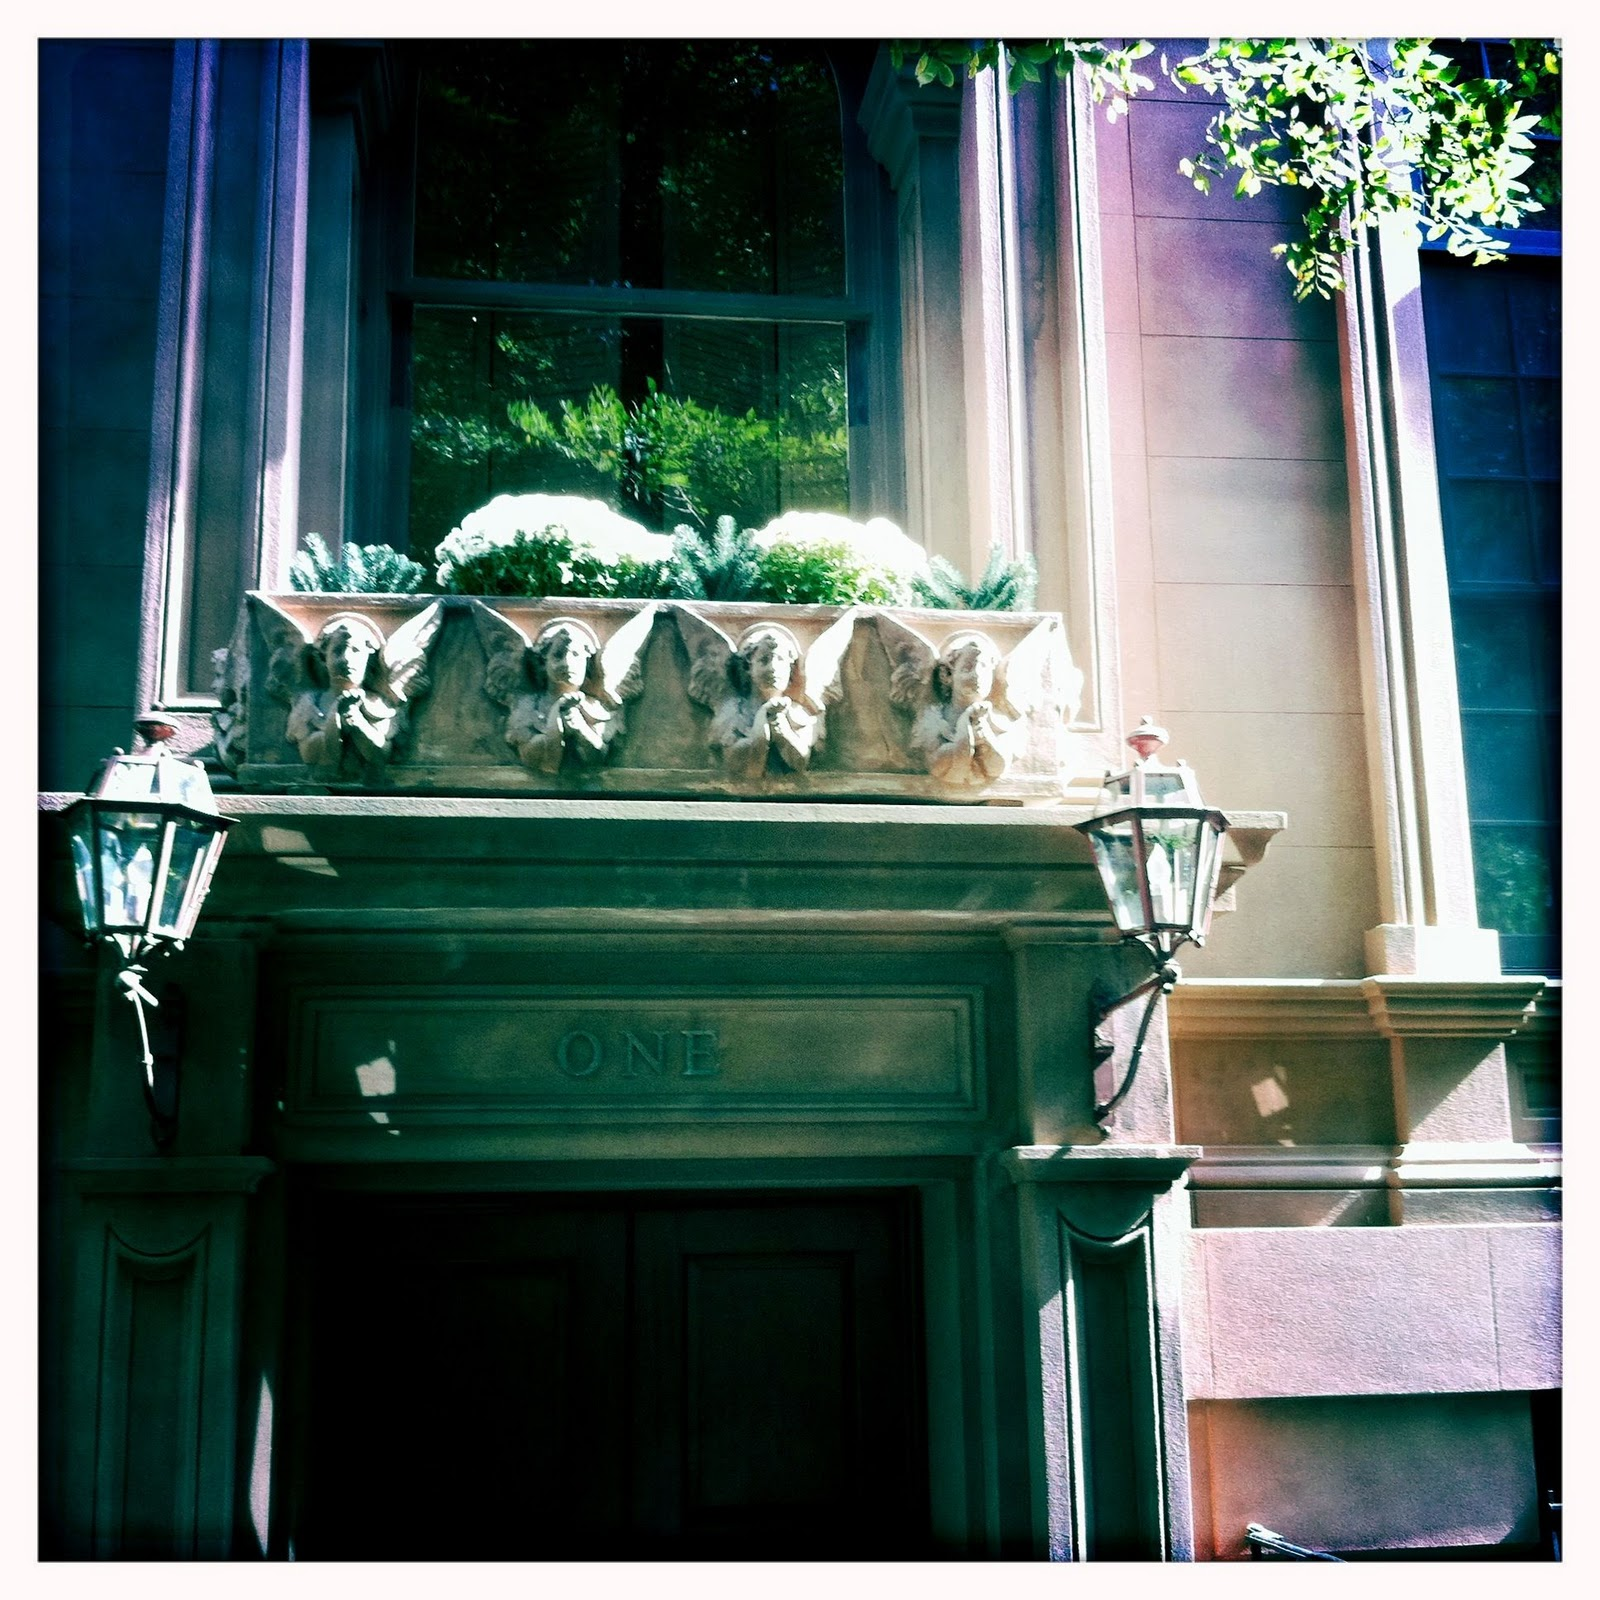 A mortal 39 s guide to the angels of new york city for 2 montague terrace brooklyn heights